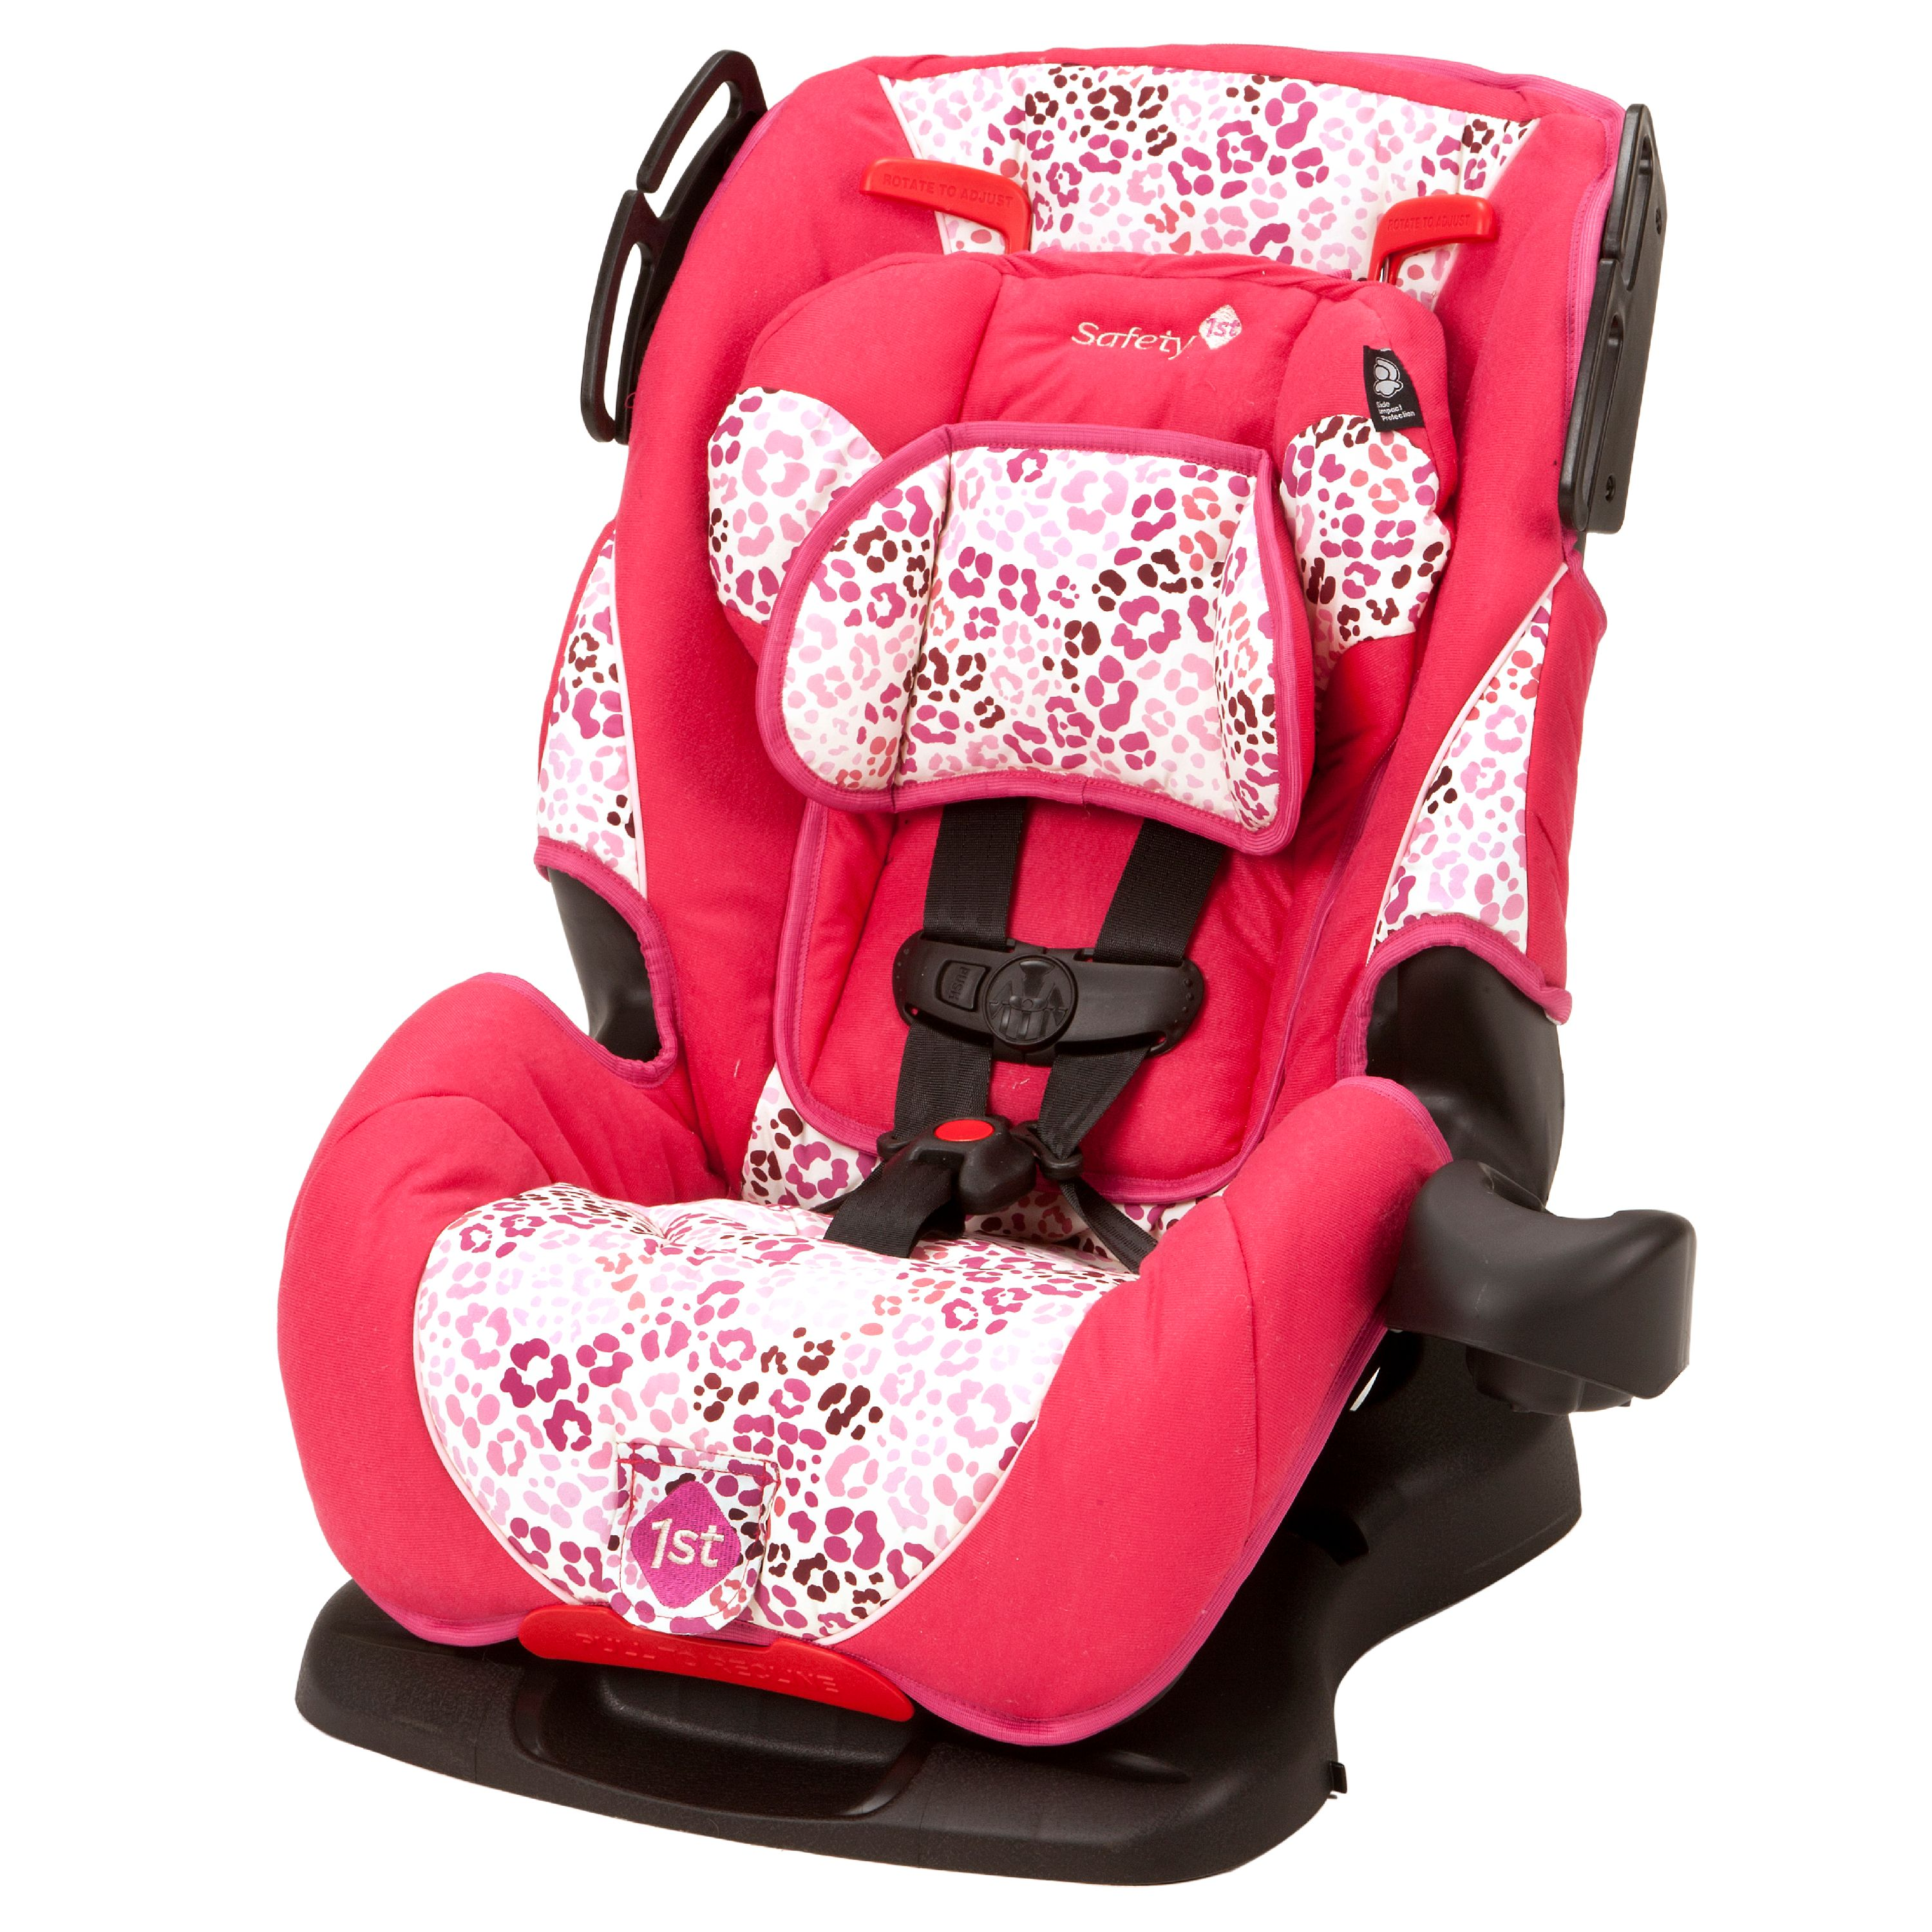 This is Actually the Brand New Image Of Walmart Baby Trend Hybrid Lx